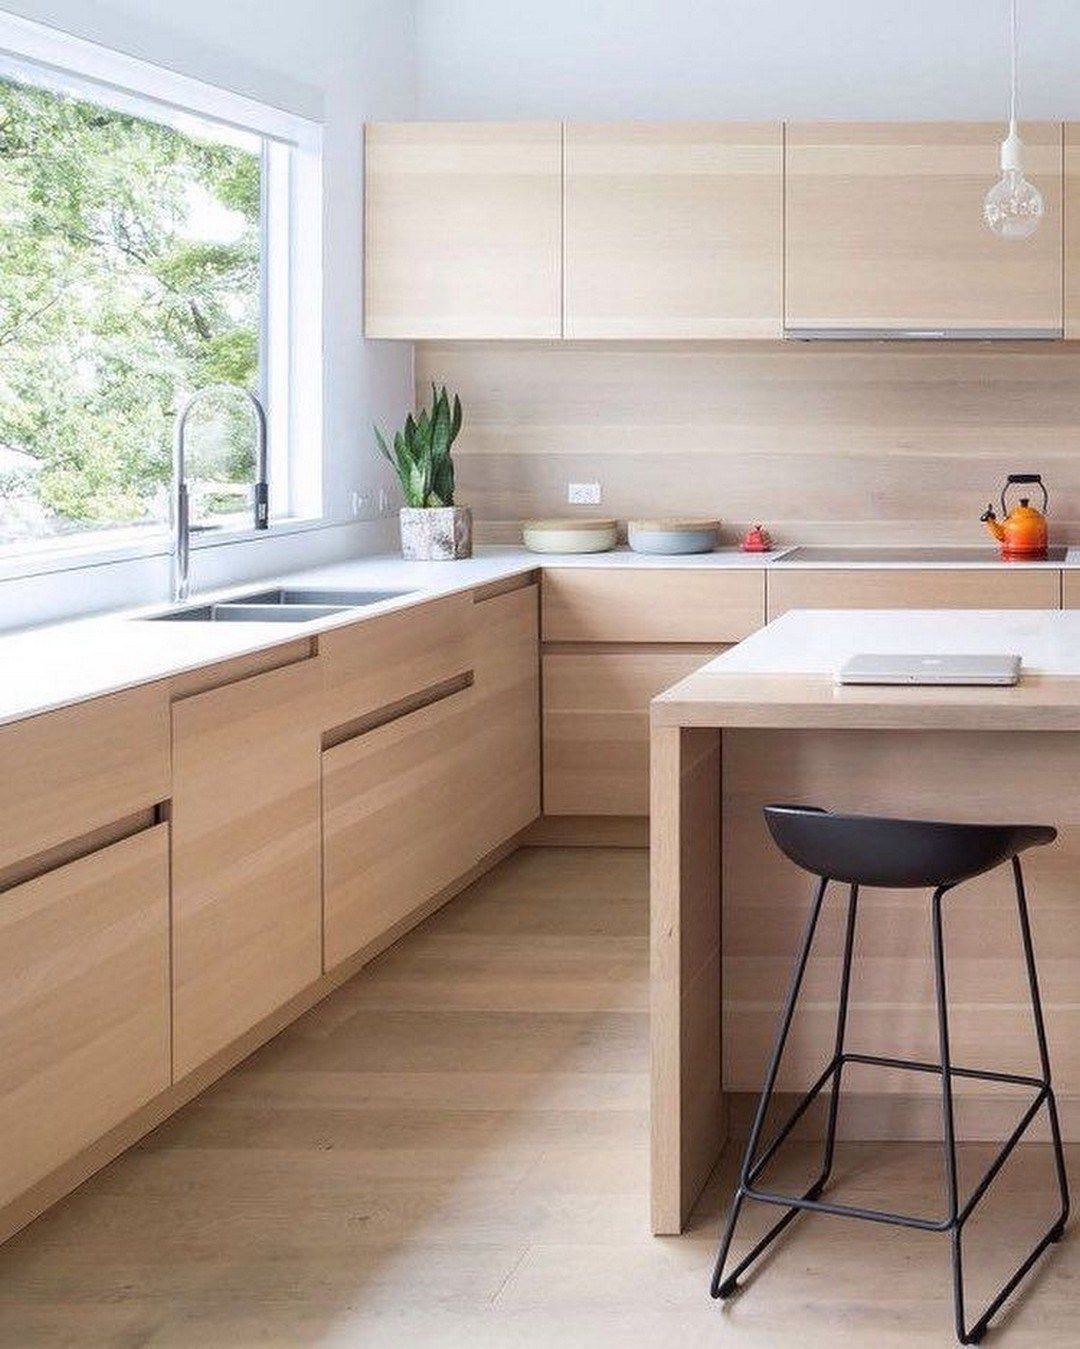 29 Design Combinations For A Modern Kitchen 10 Kitchen Ideas Wood Kitchen Cabinets Kitchen Cabinet Design Modern Kitchen Design